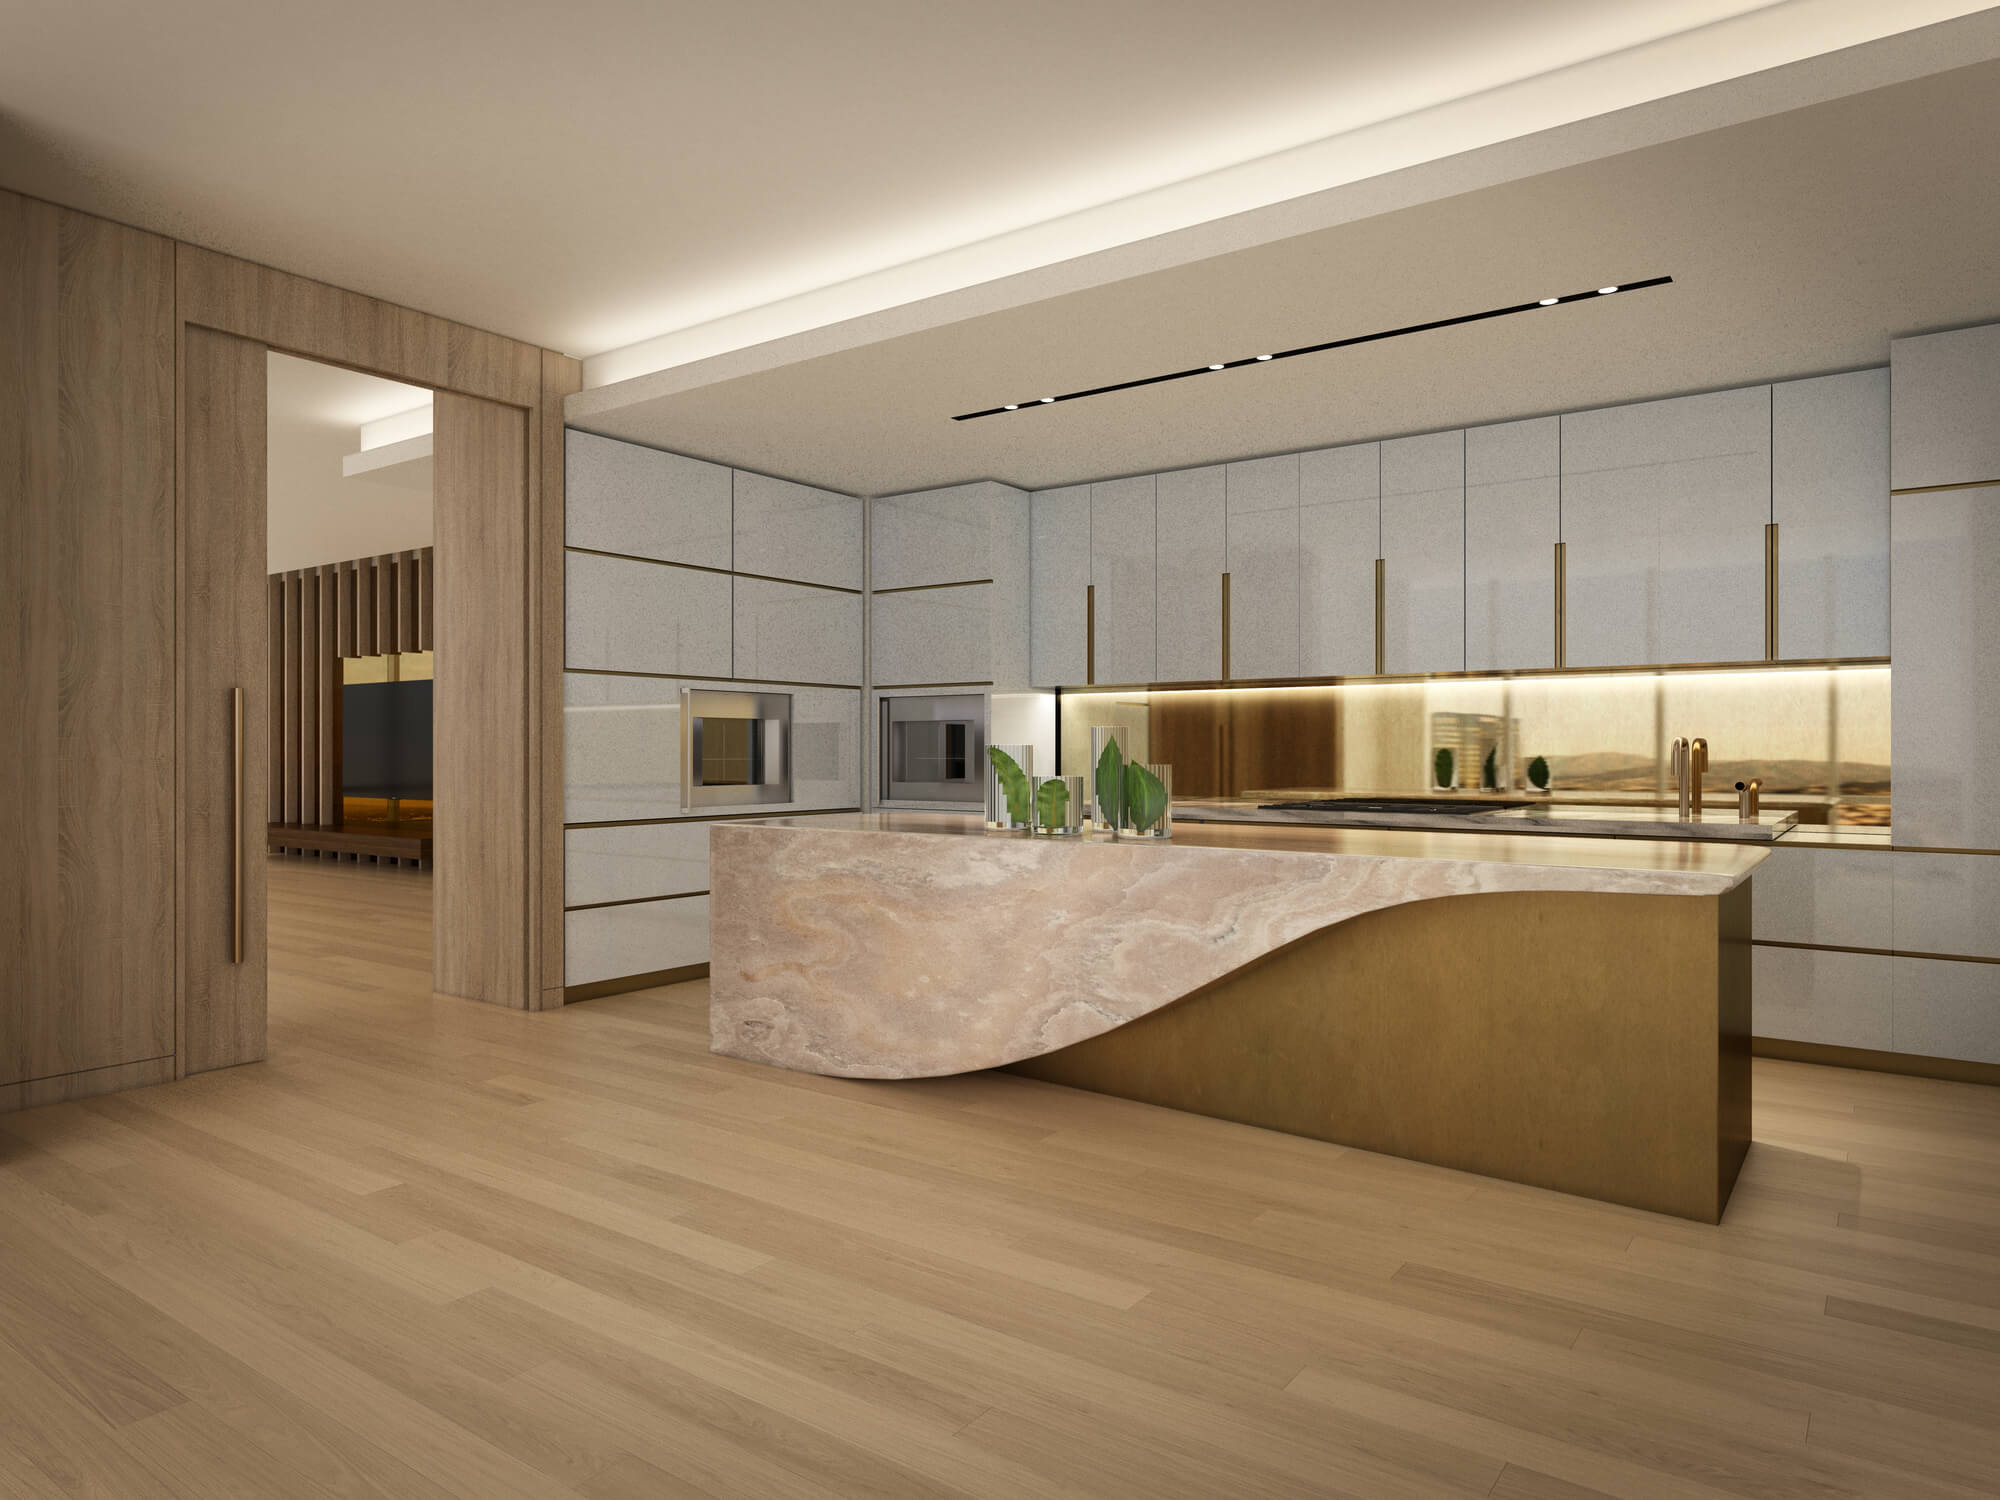 THEA luxury kitchen with tan finishing